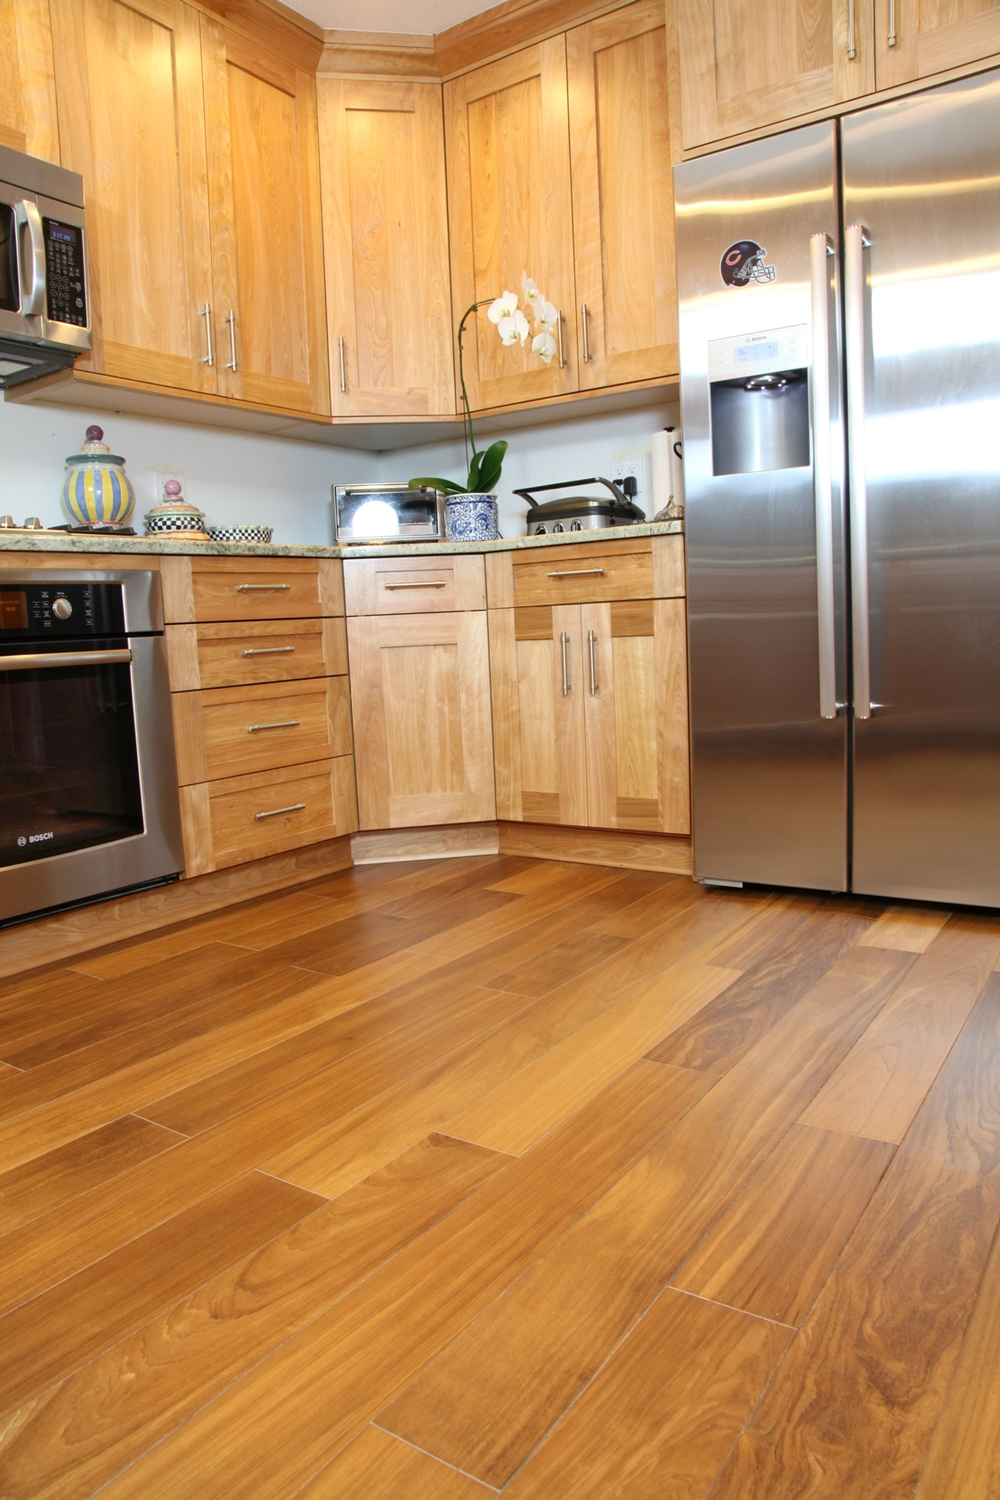 African Celtis Light Hardwood Flooring